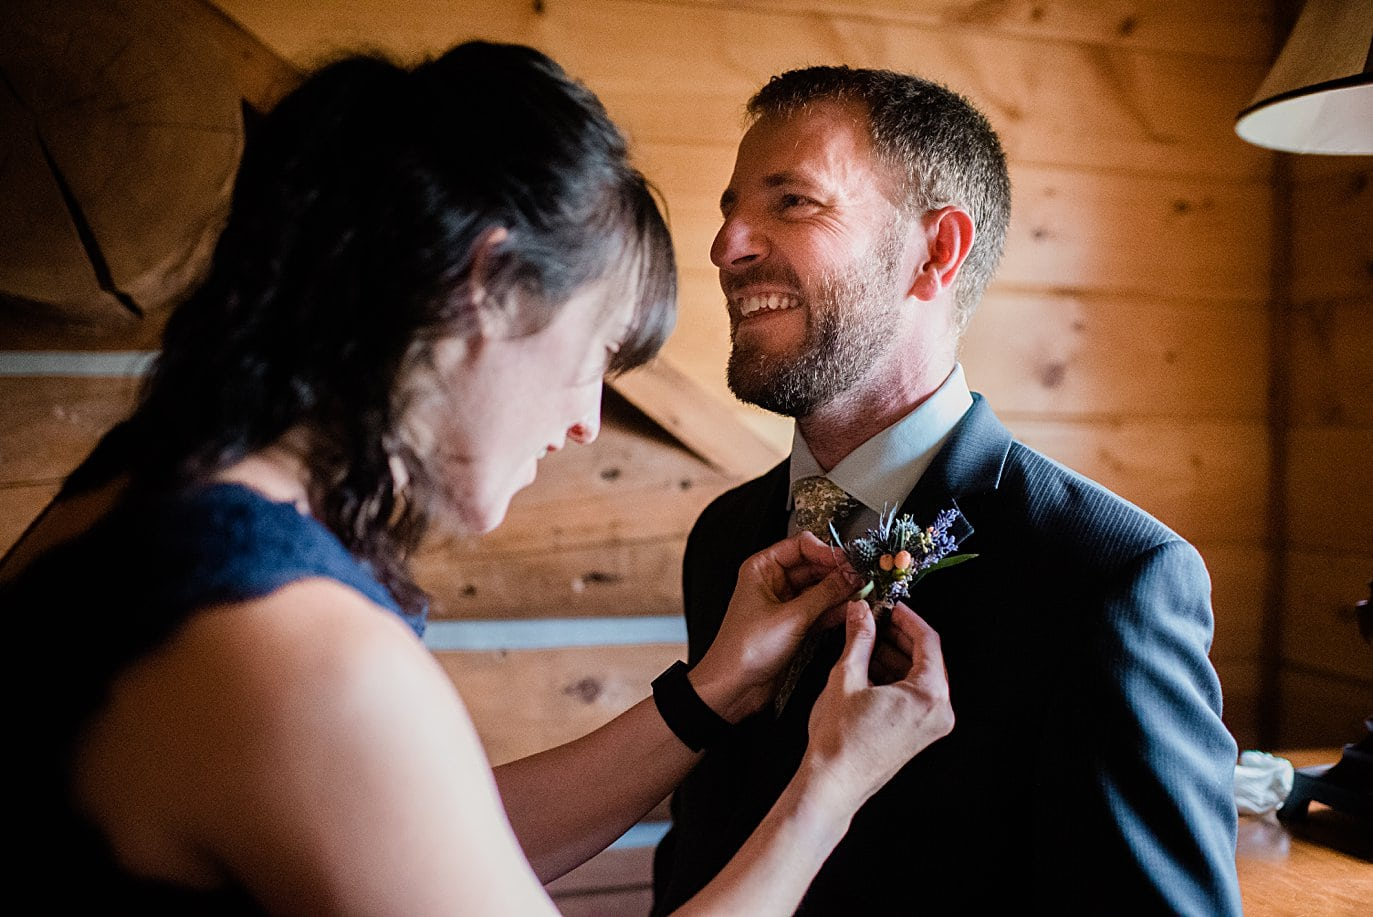 groom getting boutonniere pined on before wedding ceremony at intimate Grand Lake wedding by Grand Lake wedding photographer Jennie Crate